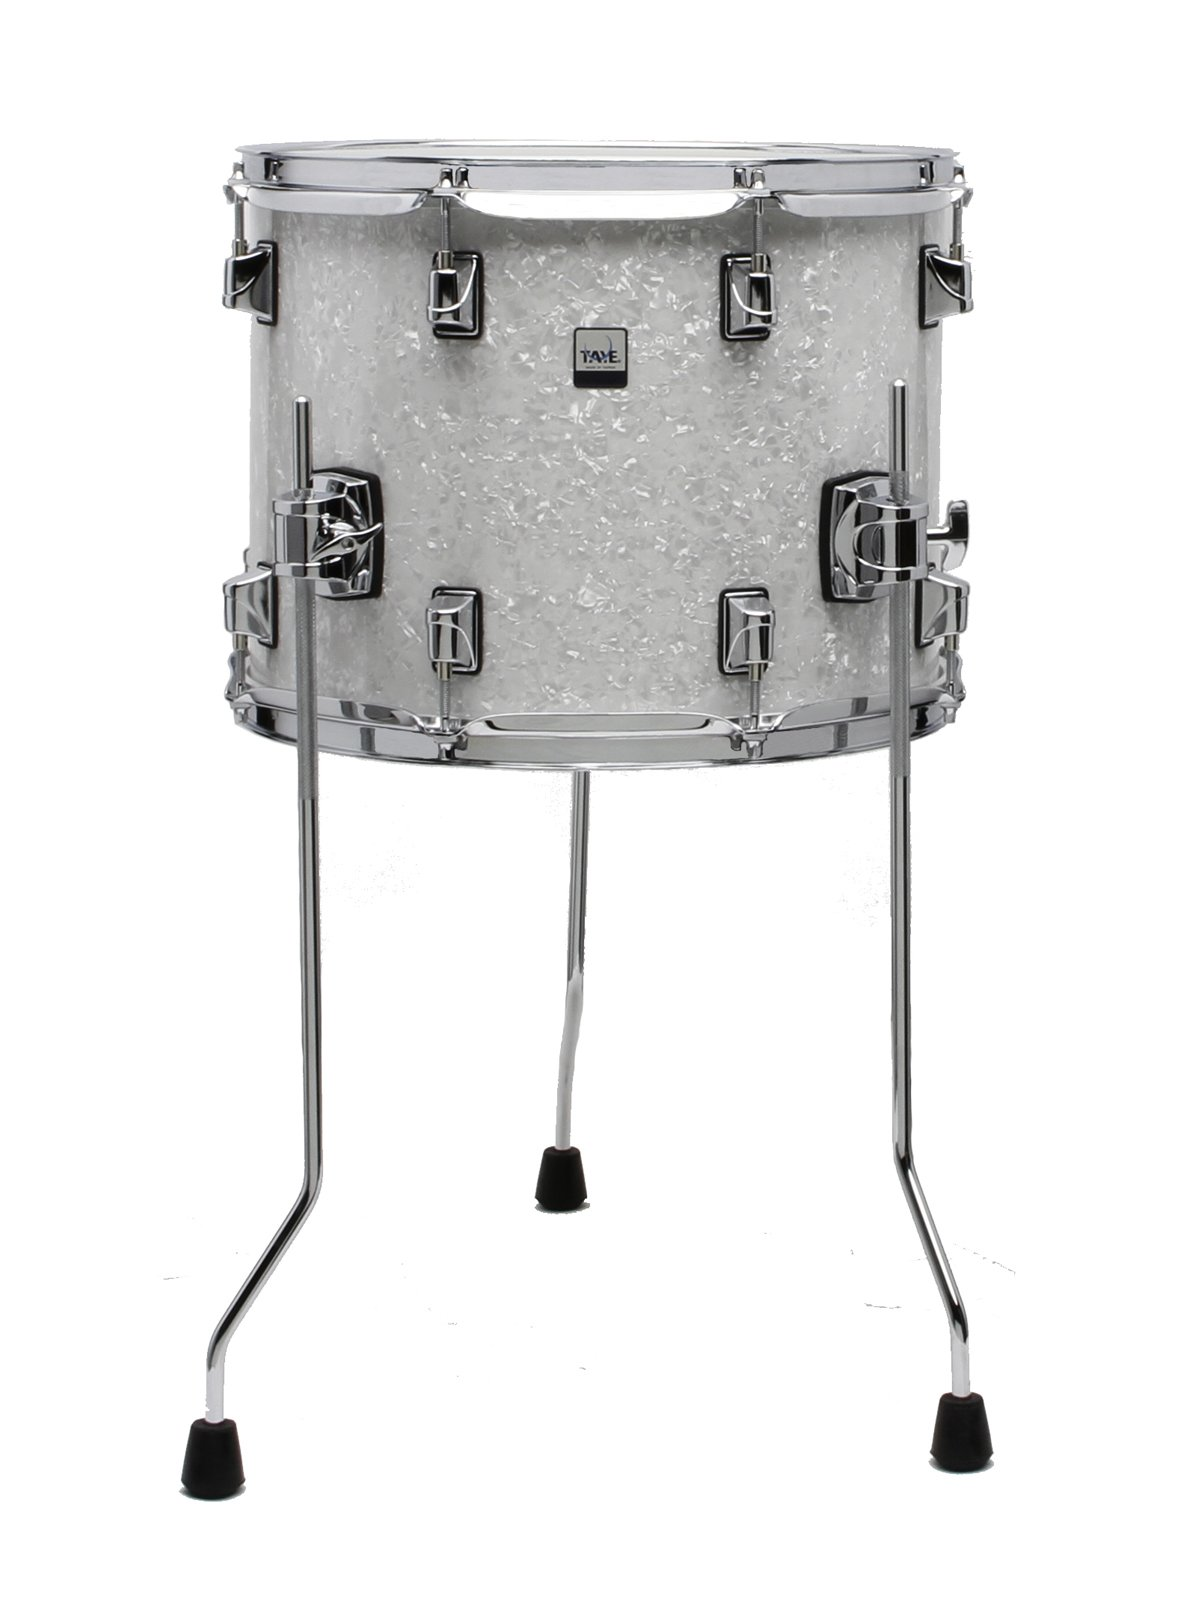 Taye Drums GK1411F-WP 14-Inch GoKit Add-On Floor Tom Tom by Taye Drums